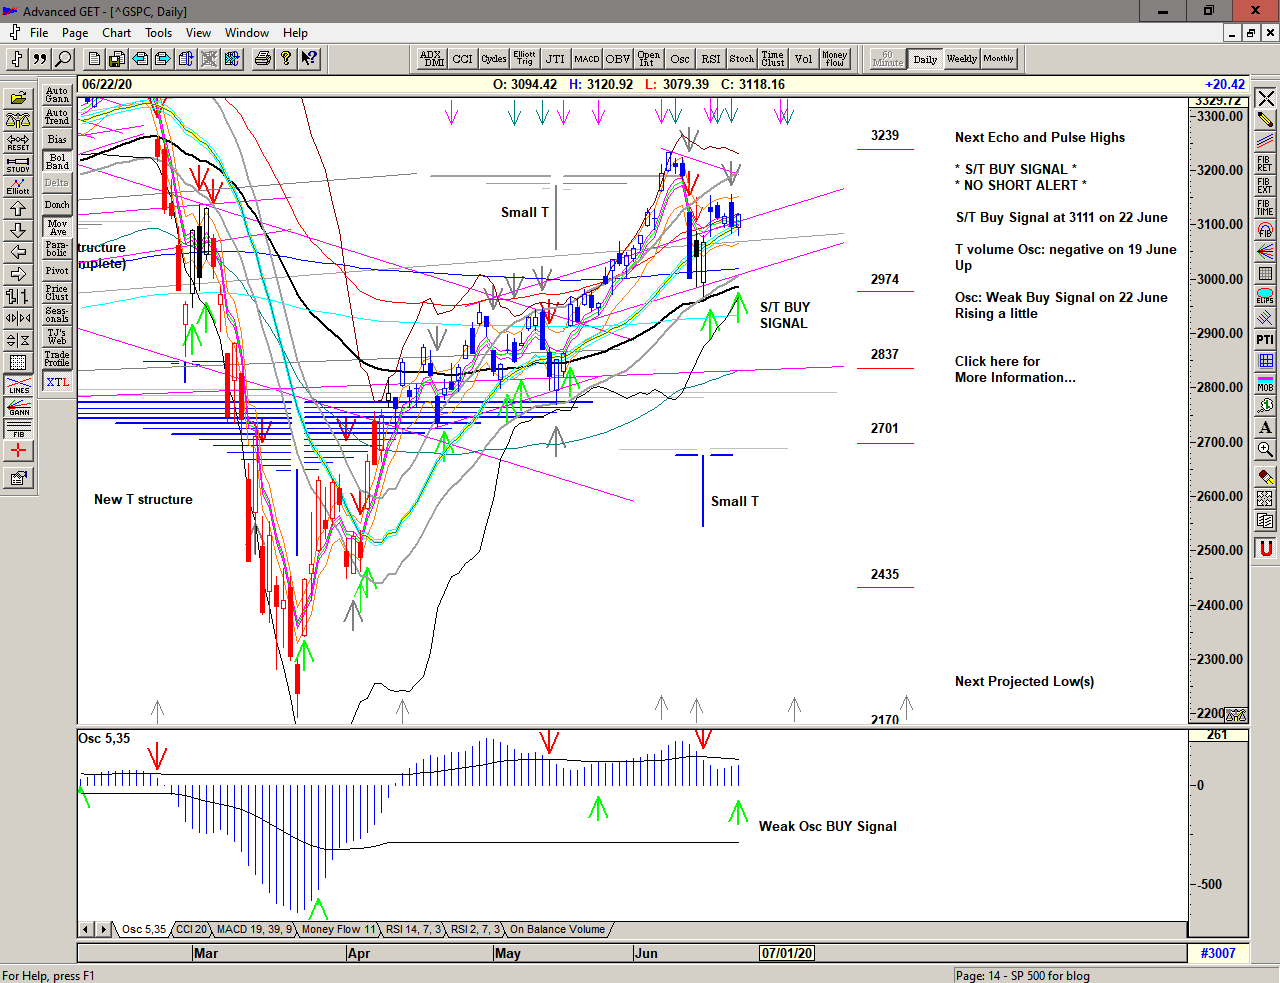 Daily chart of S&P 500 for 23 June 2020